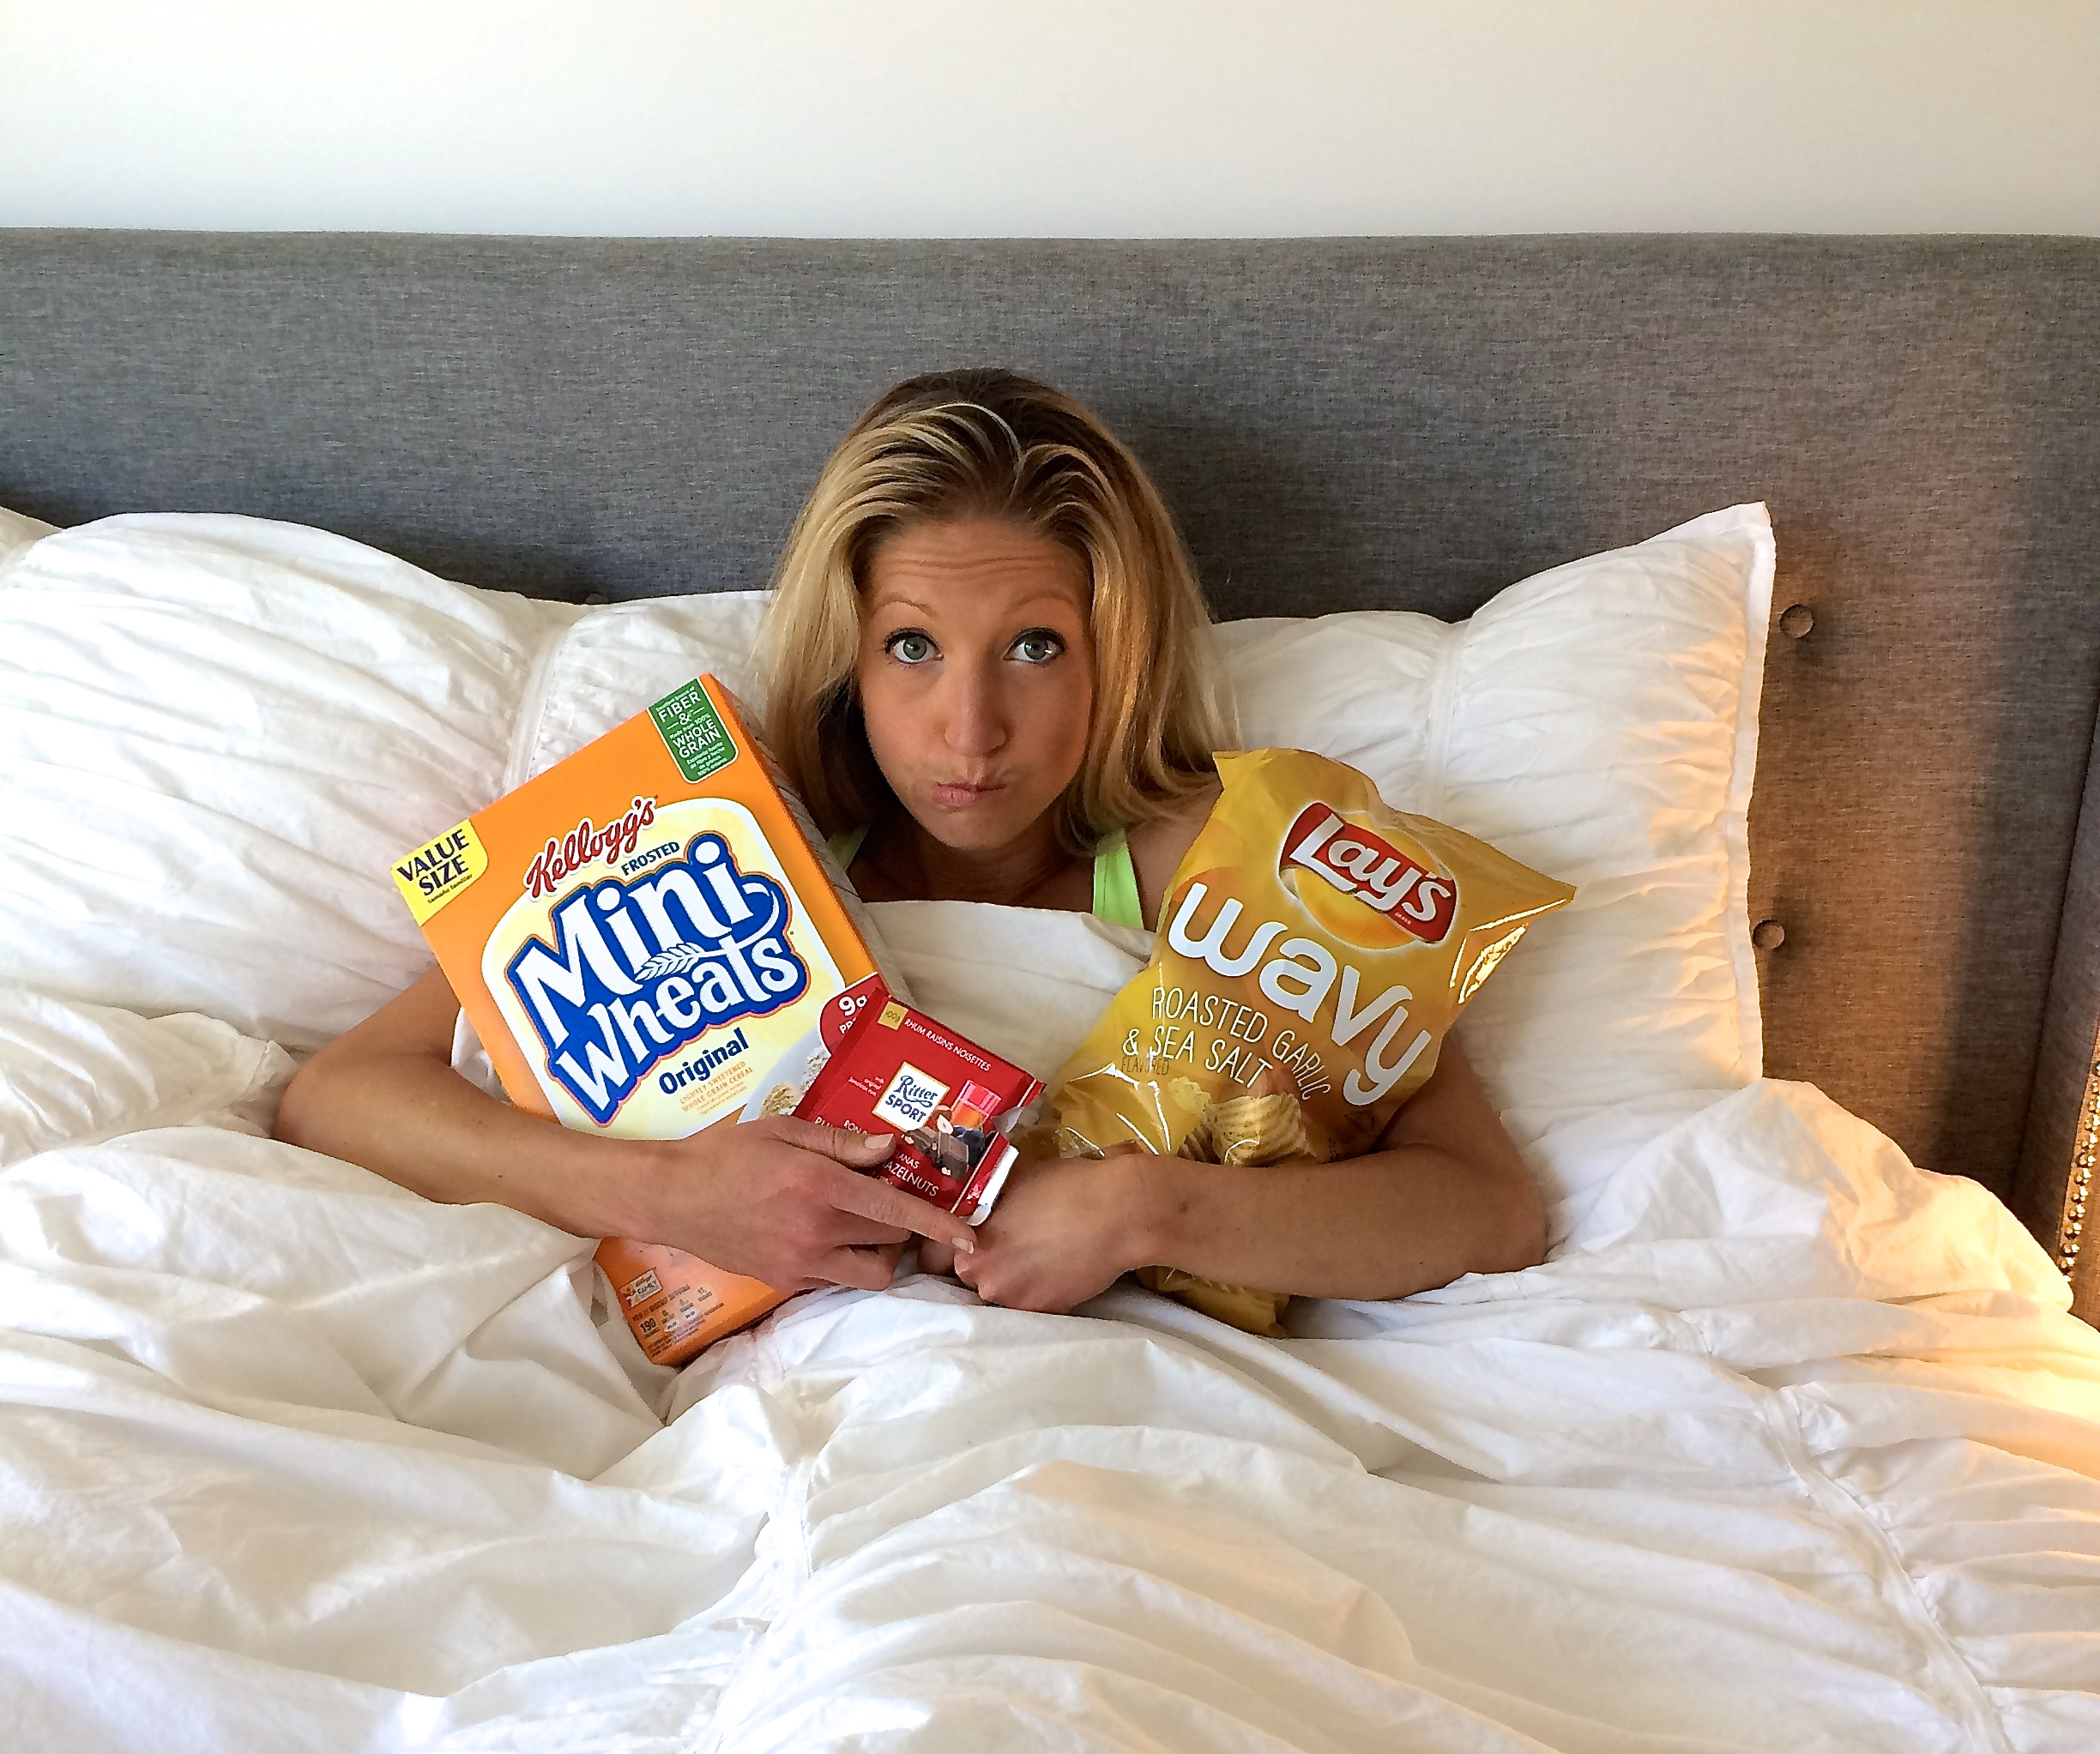 Will Eating Before Bed Make You Gain Weight? With Mini Wheats and Lays Chips It Might! Read this before you have a Pre-Bedtime Snack! Eat Well and you will Sleep Well.